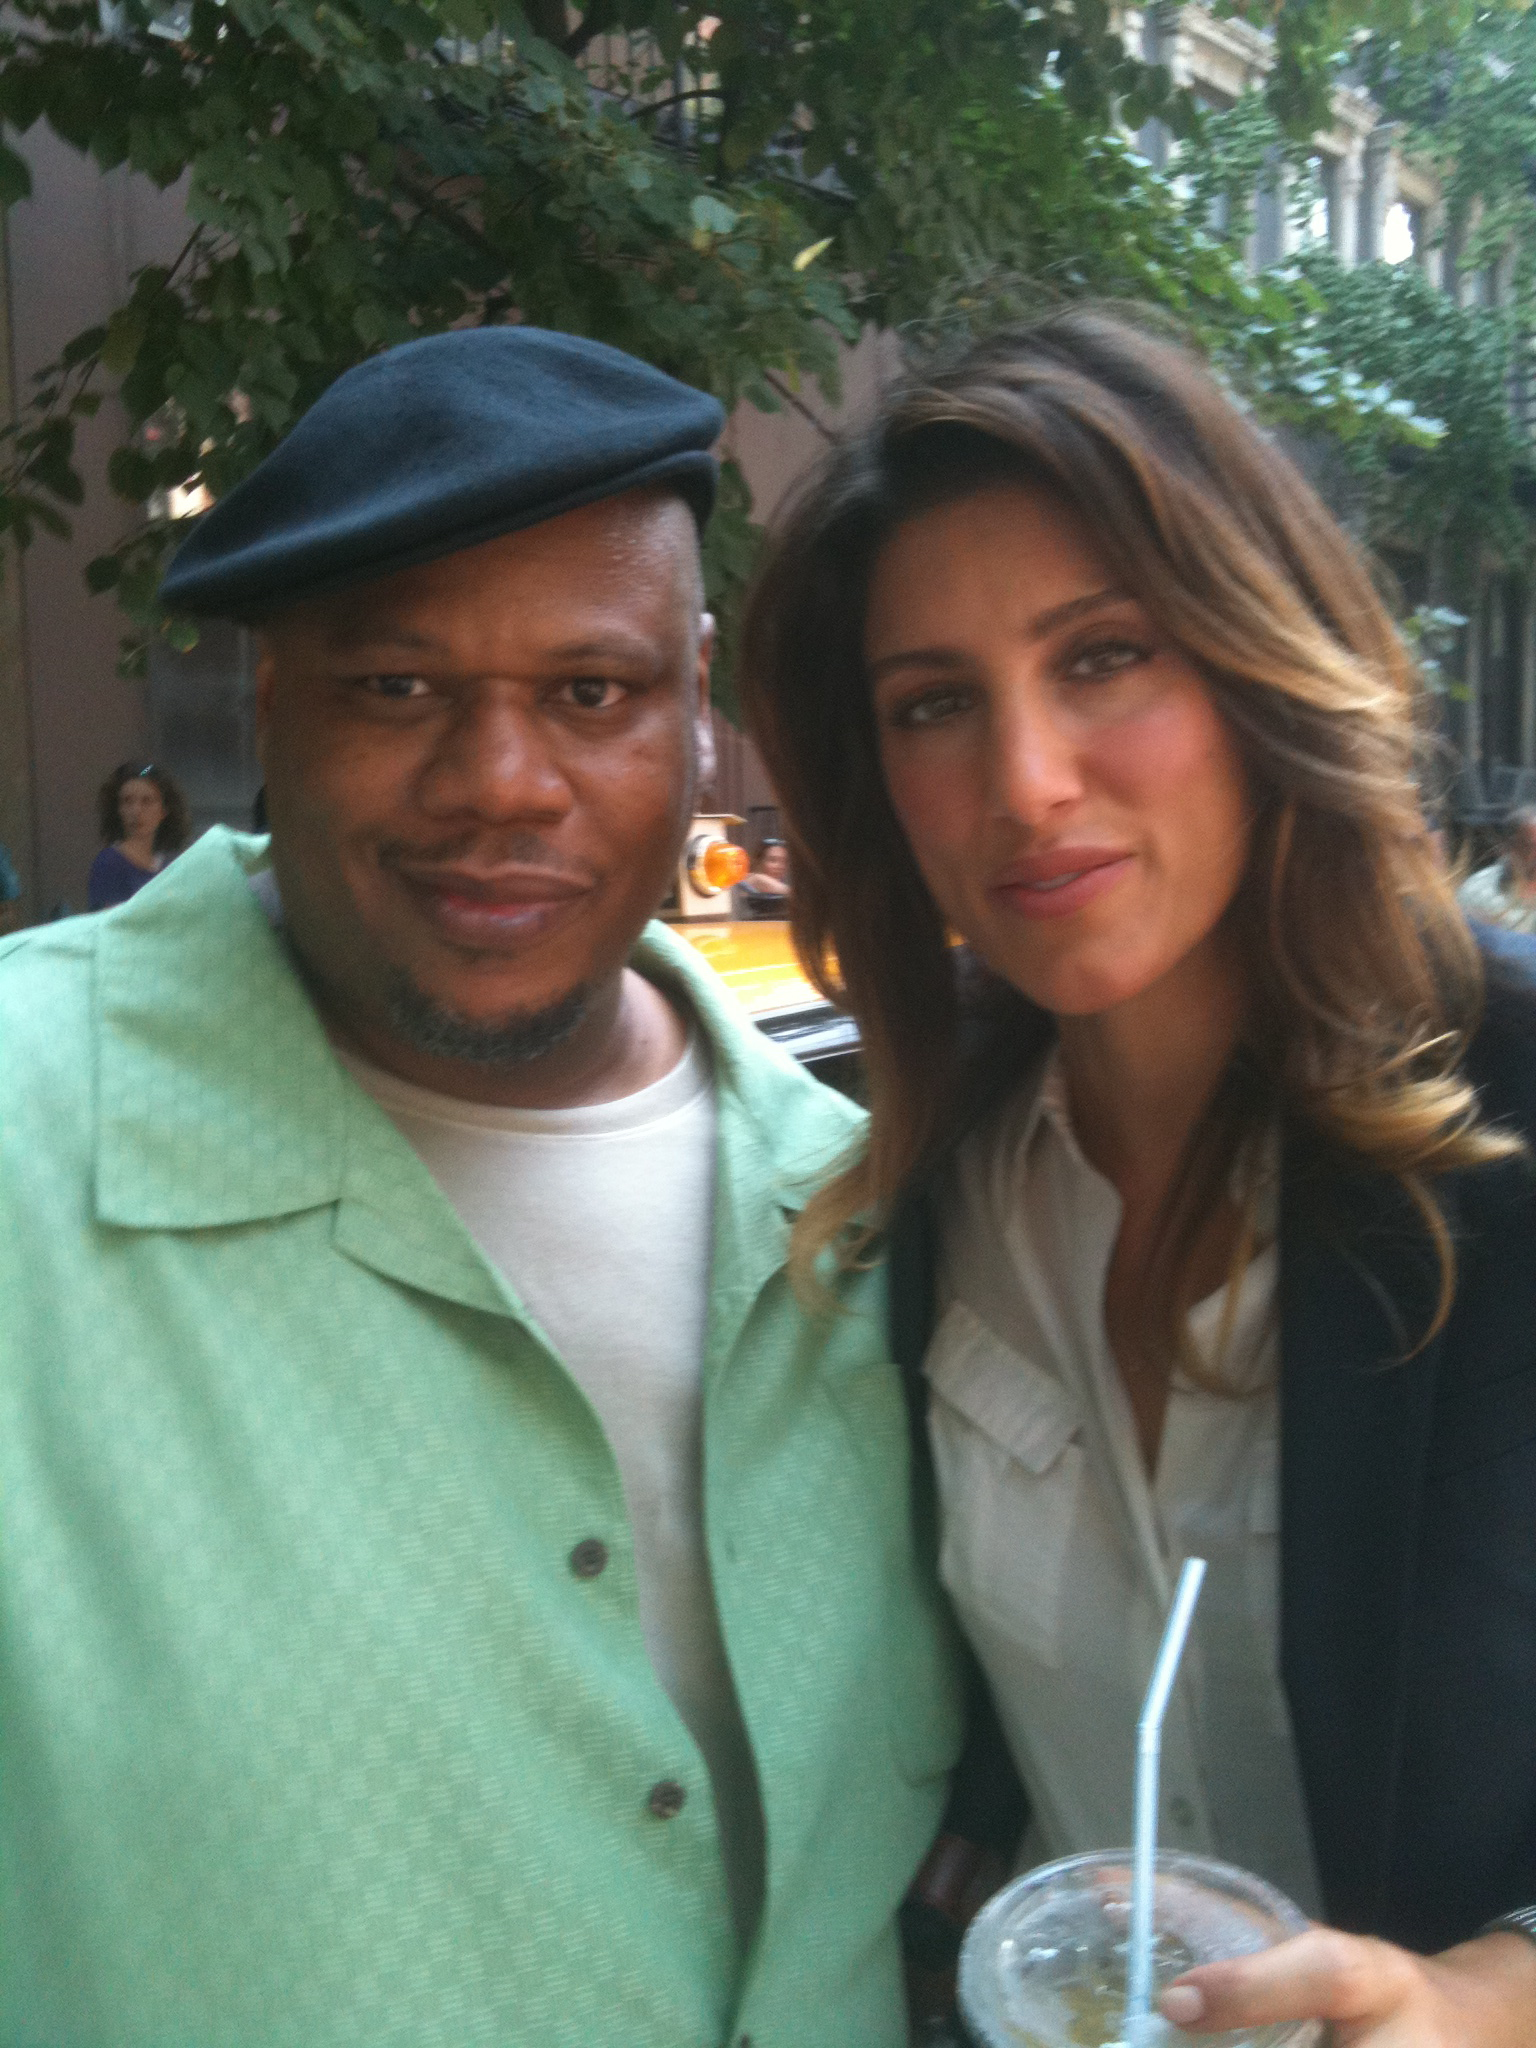 Still of Jennifer Esposito and Billy Griffith on the set of Blue Bloods.